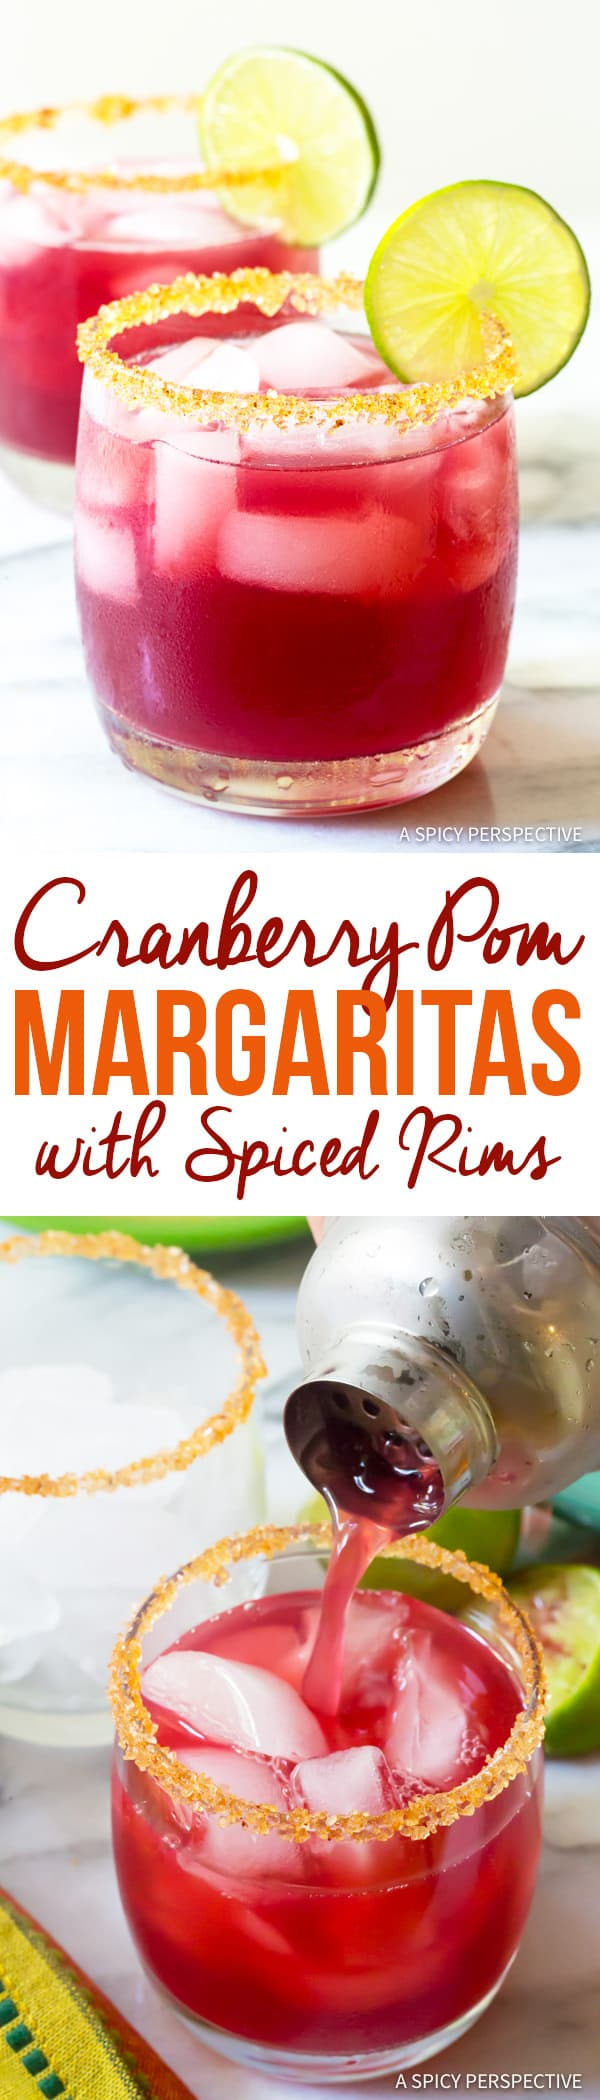 Dazzling Cranberry Pomegranate Margarita with Spiced Rim Recipe | ASpicyPerspective.com